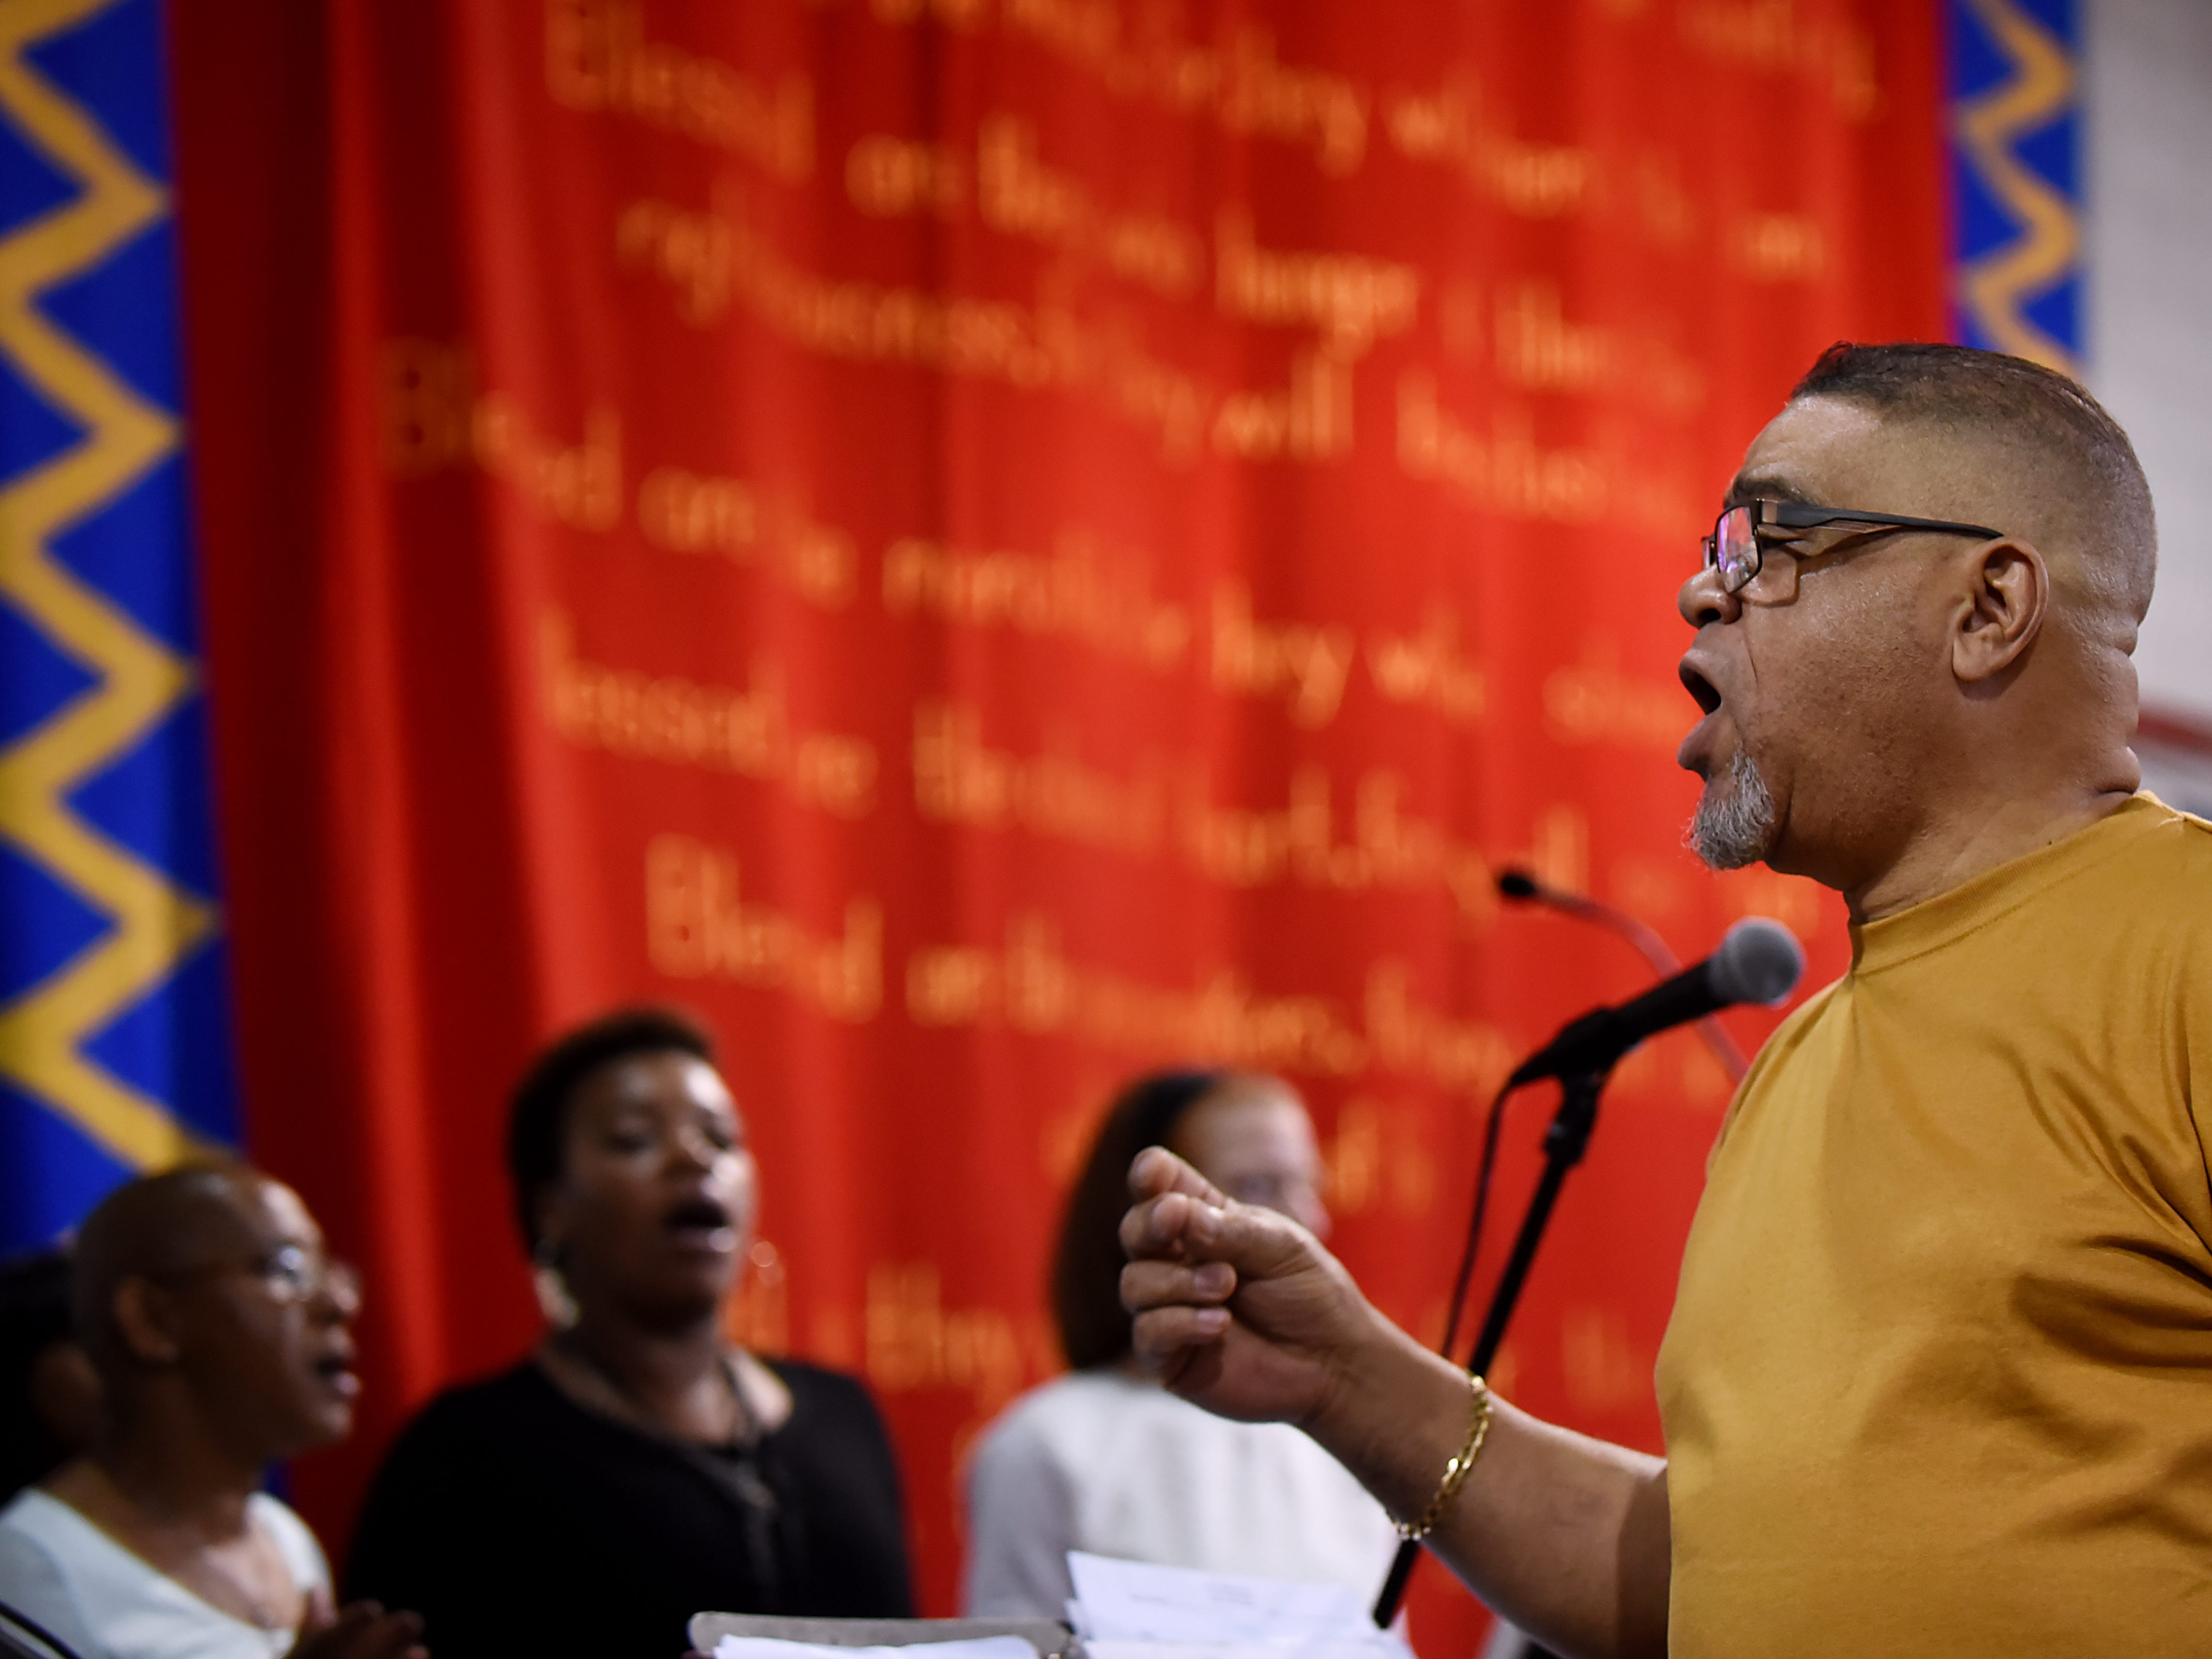 Elton West, conductor for the Straight and Narrow Choir, practices at the Straight and Narrow great hall in Paterson on Saturday October 13, 2018.